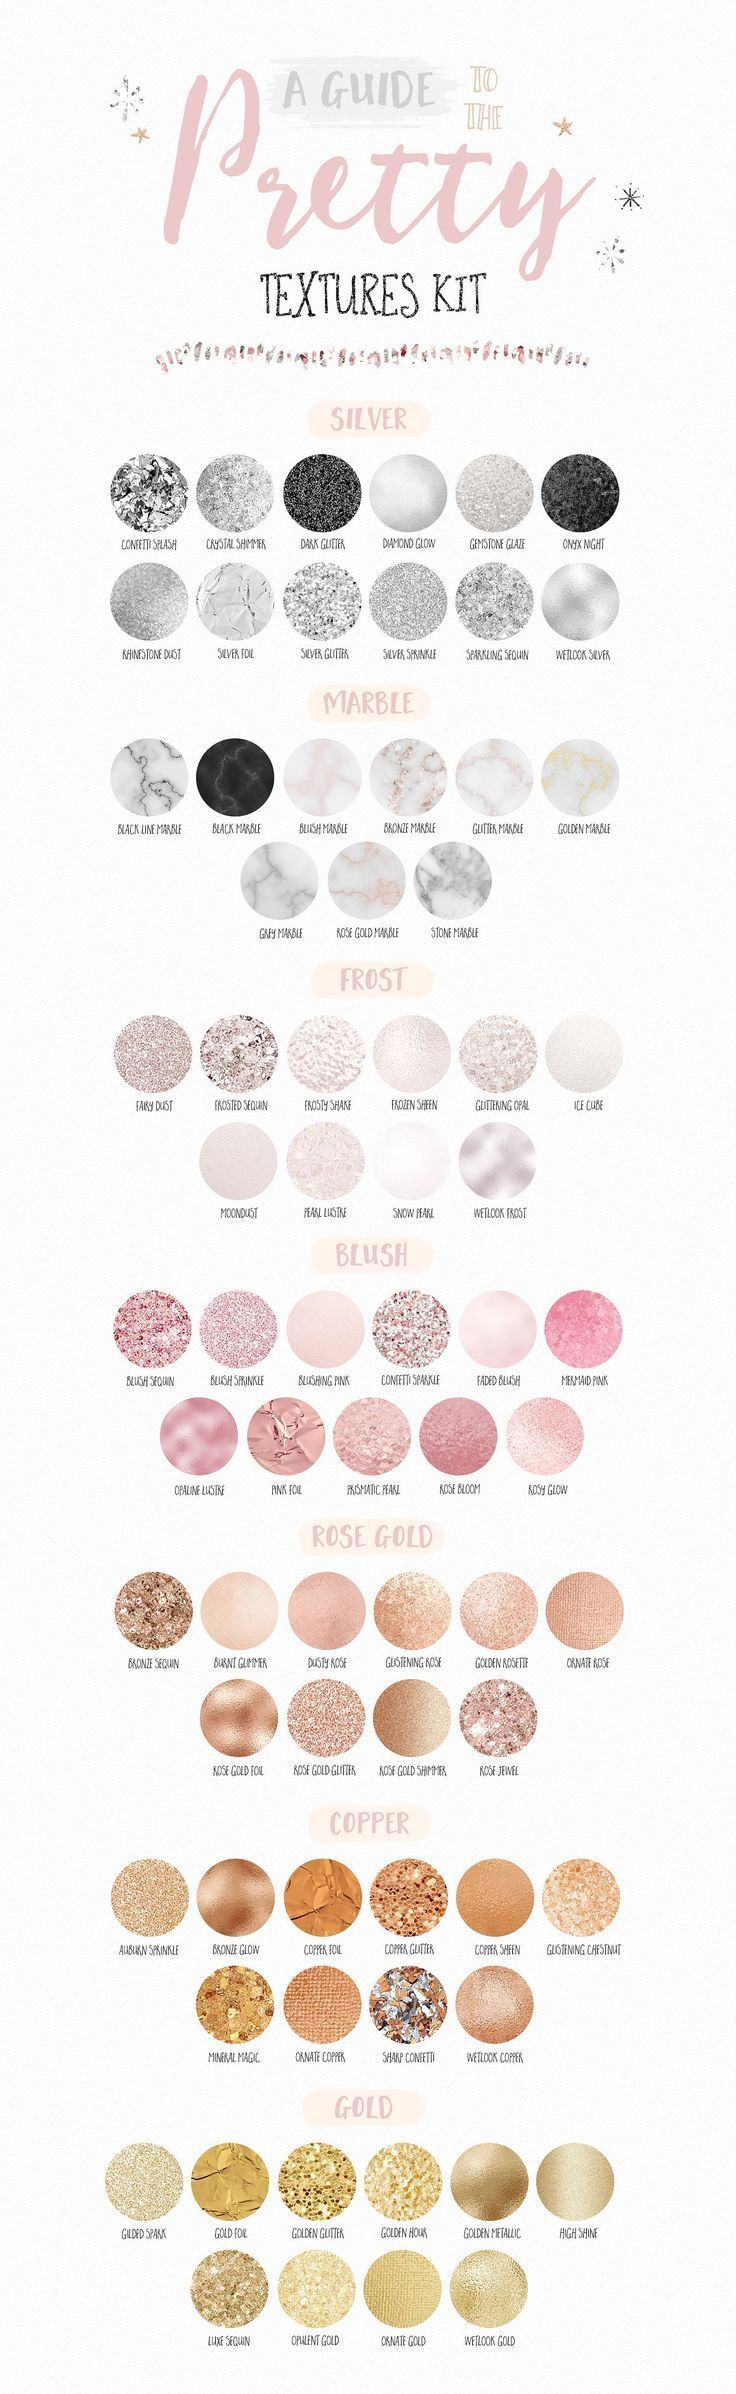 A guide to the Pretty Textures Kit | Download textures in silver, marble, blush, rose gold and gold to add to graphic design, logos, branding, stationery, scrapbooking, blog design, eBooks and more! Click on the image to find it at Creative Market ♥️